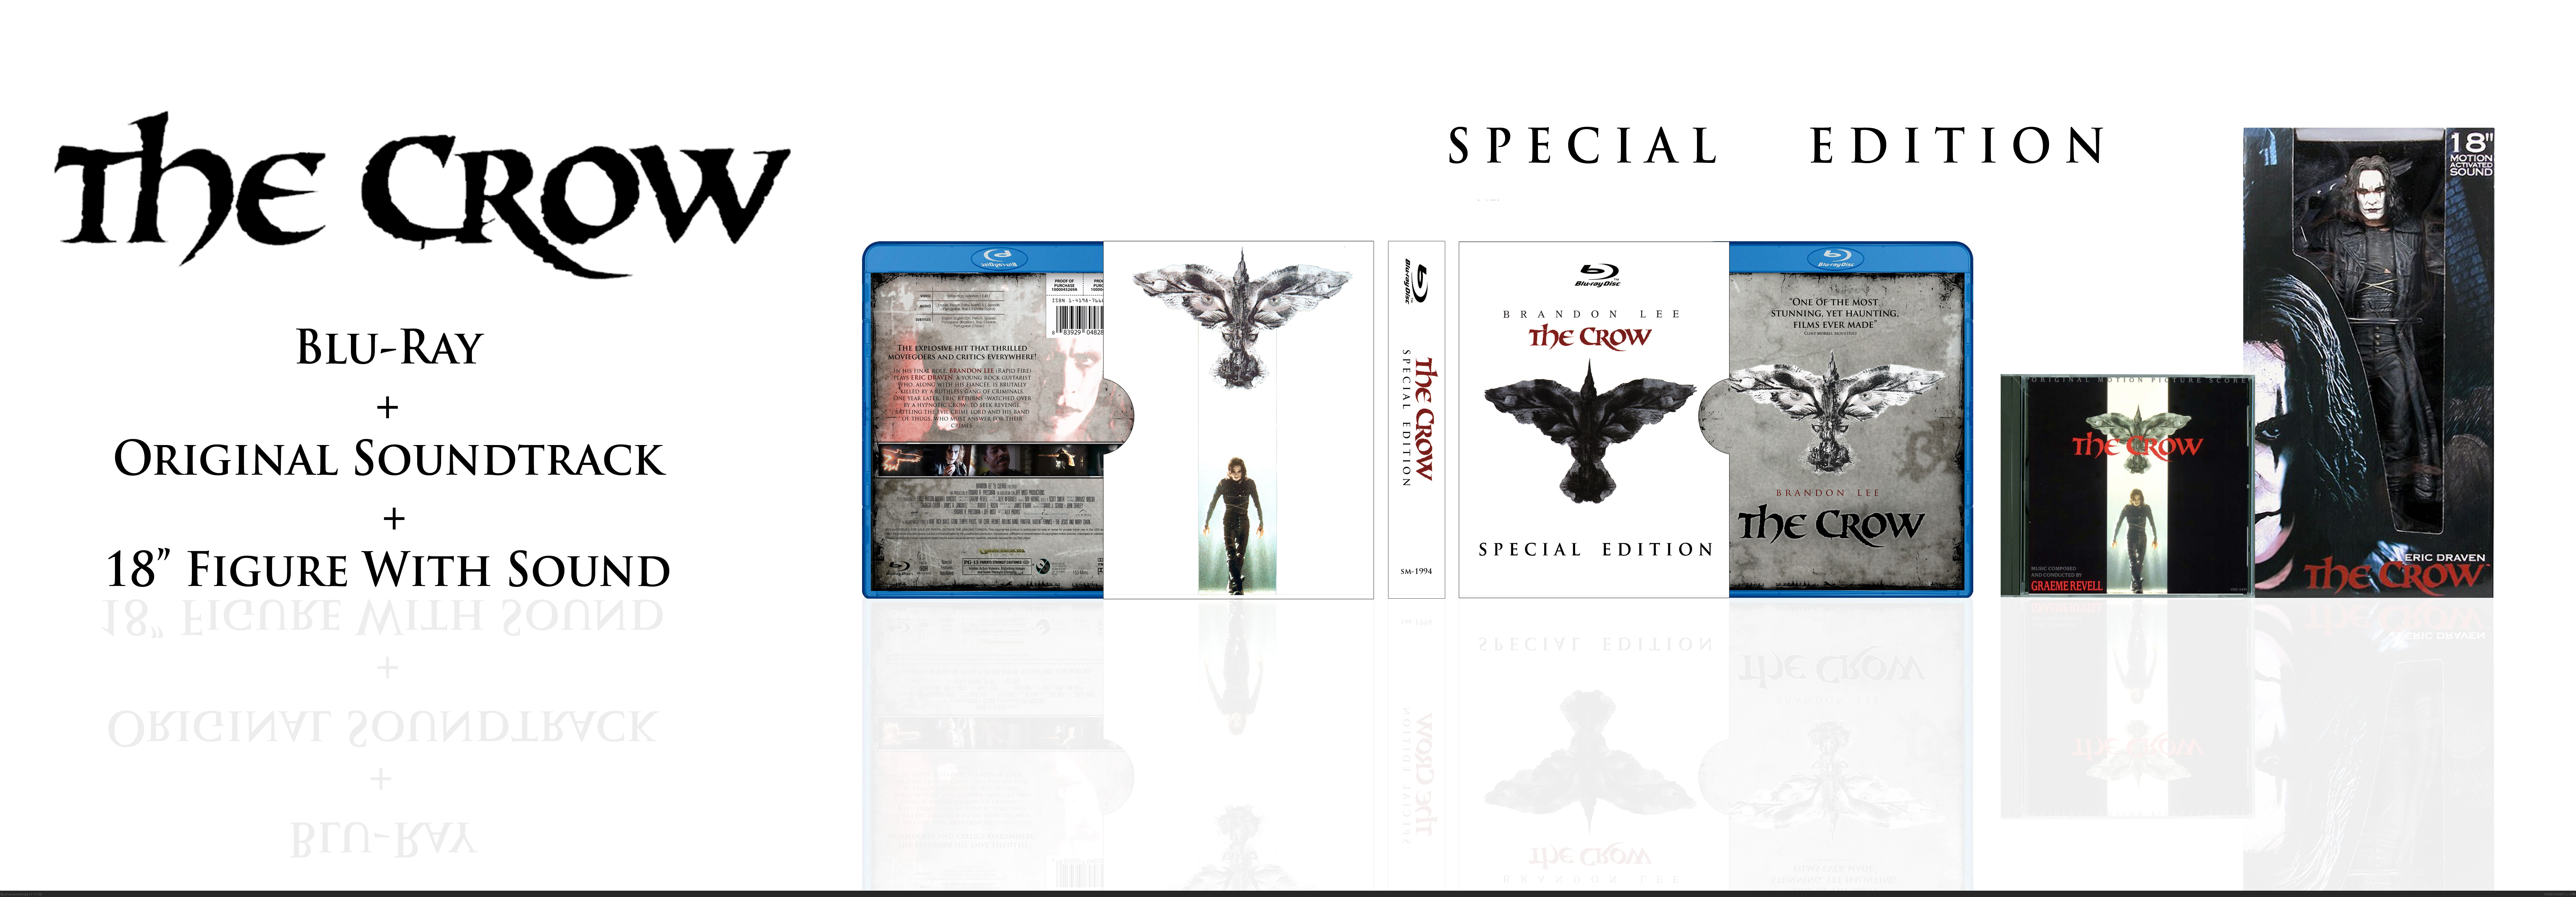 The Crow: Special Edition box cover